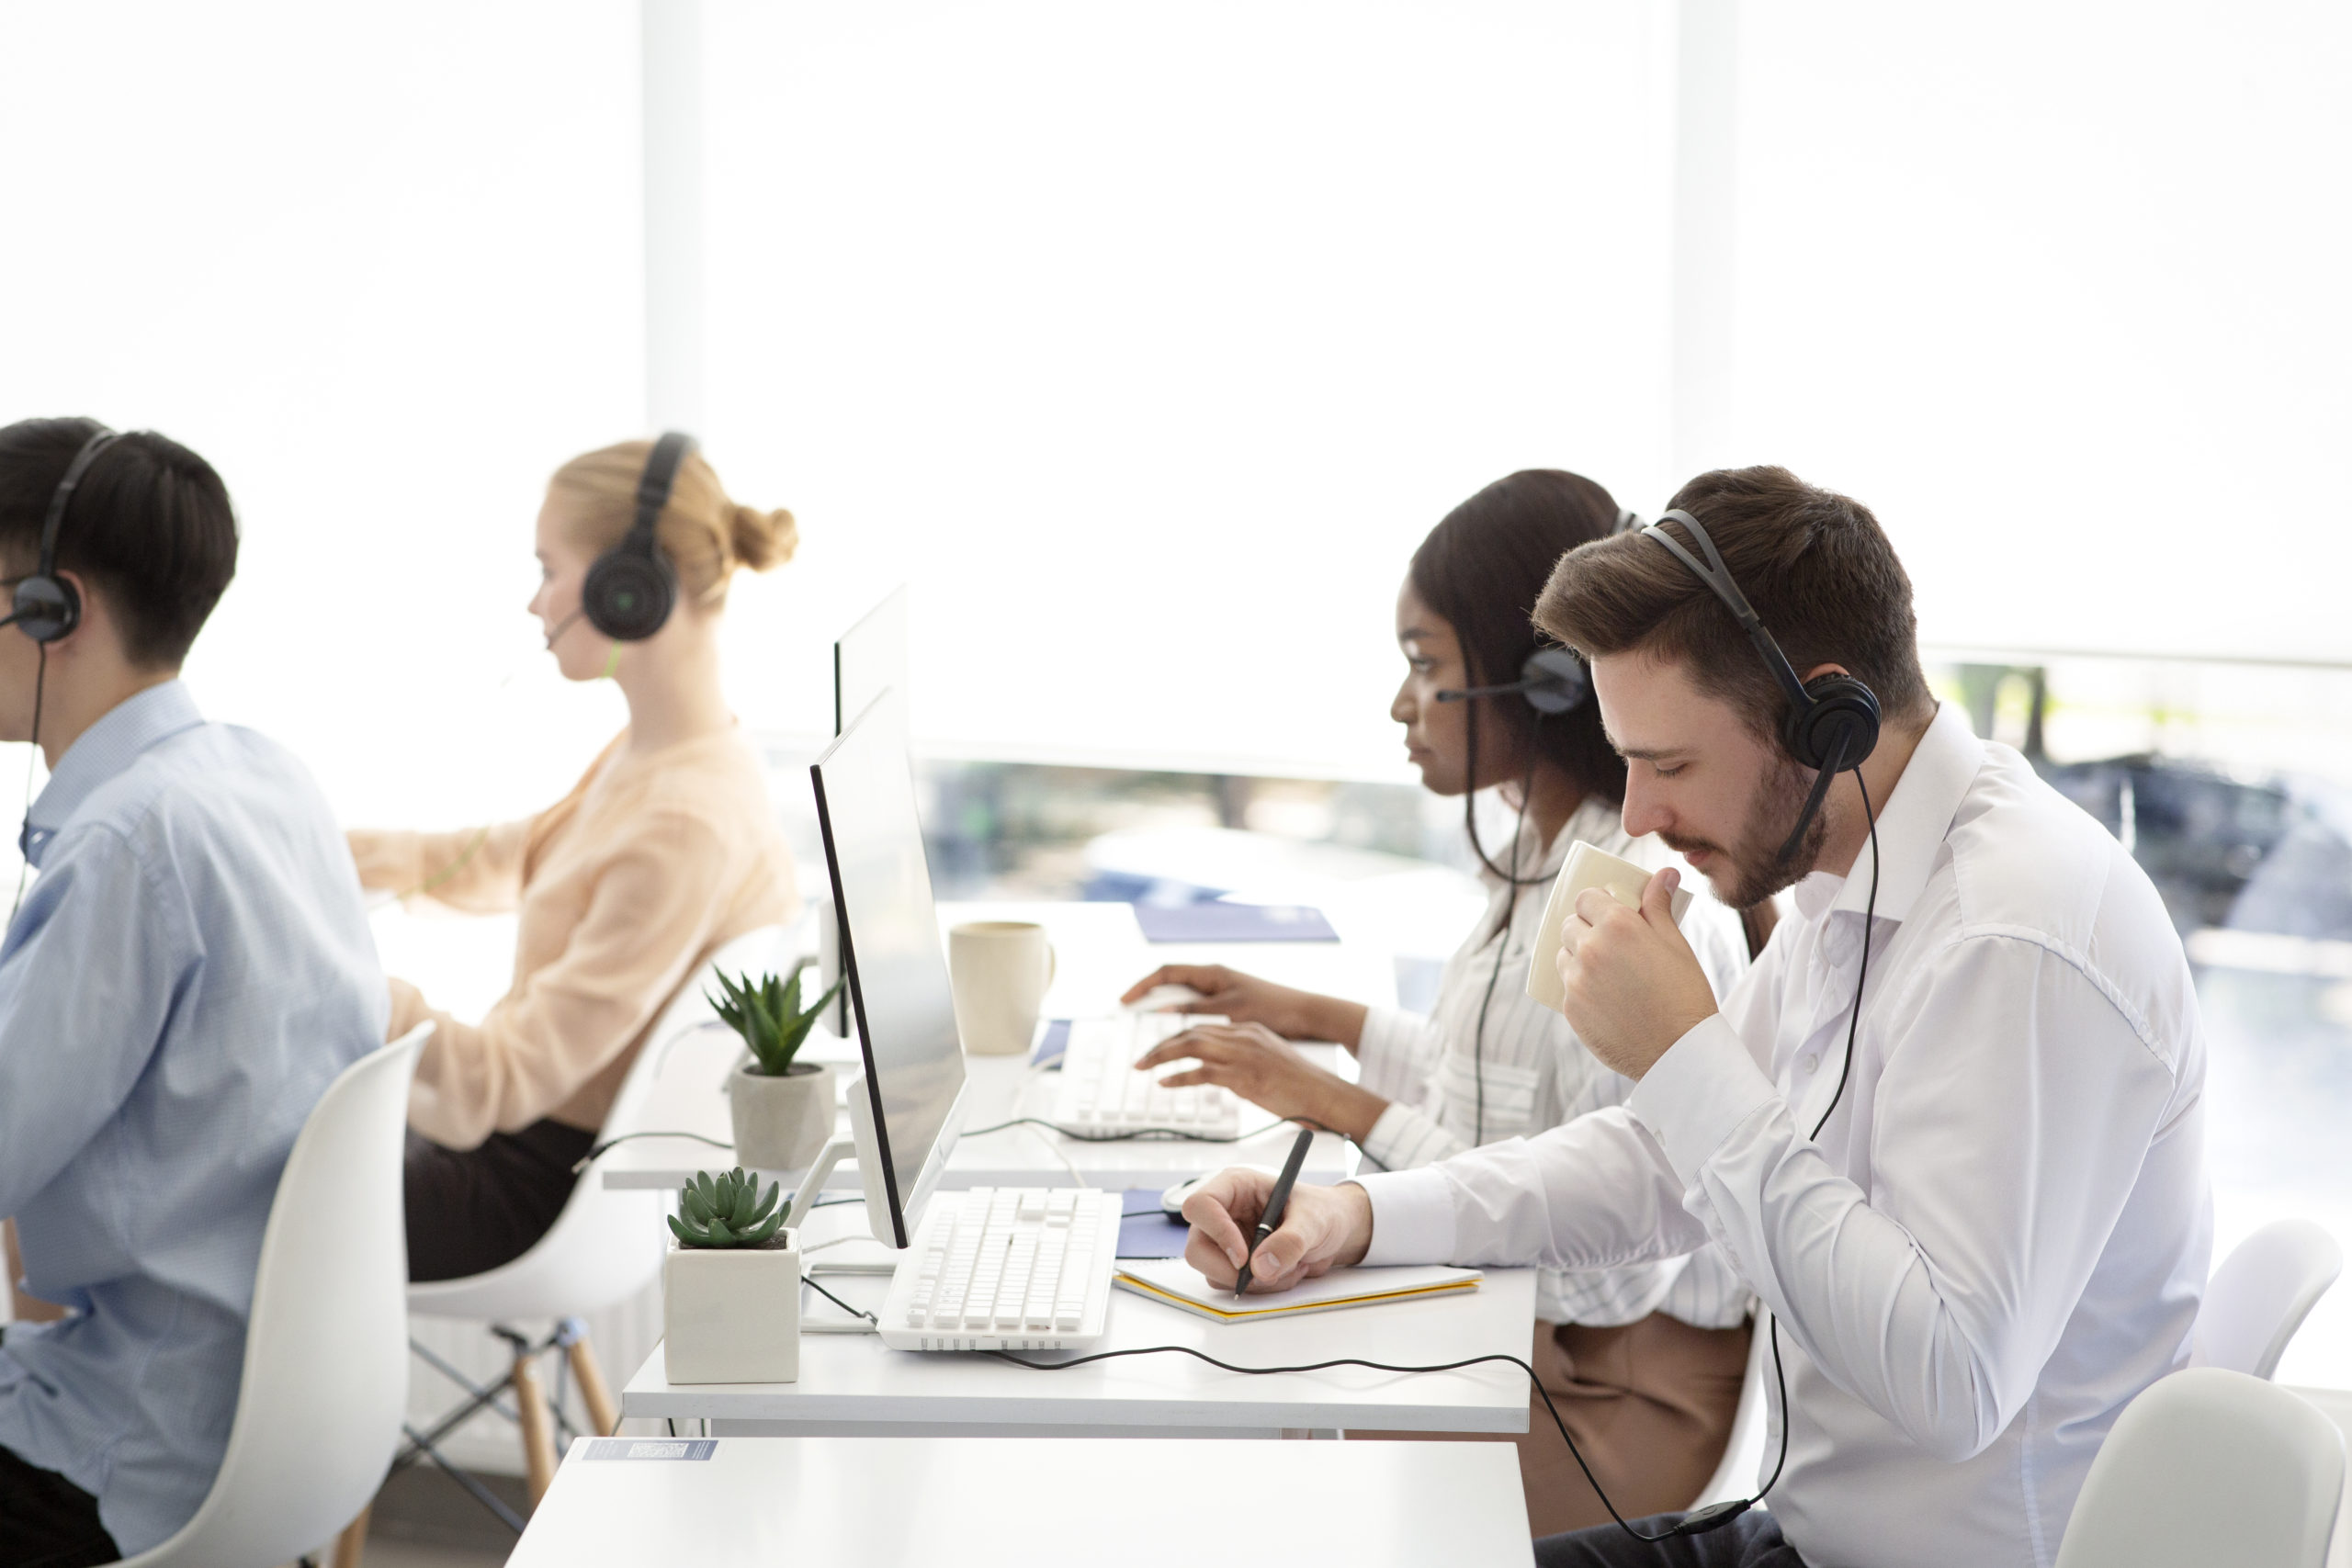 Multinational team of tech support operators at work at modern call centre office